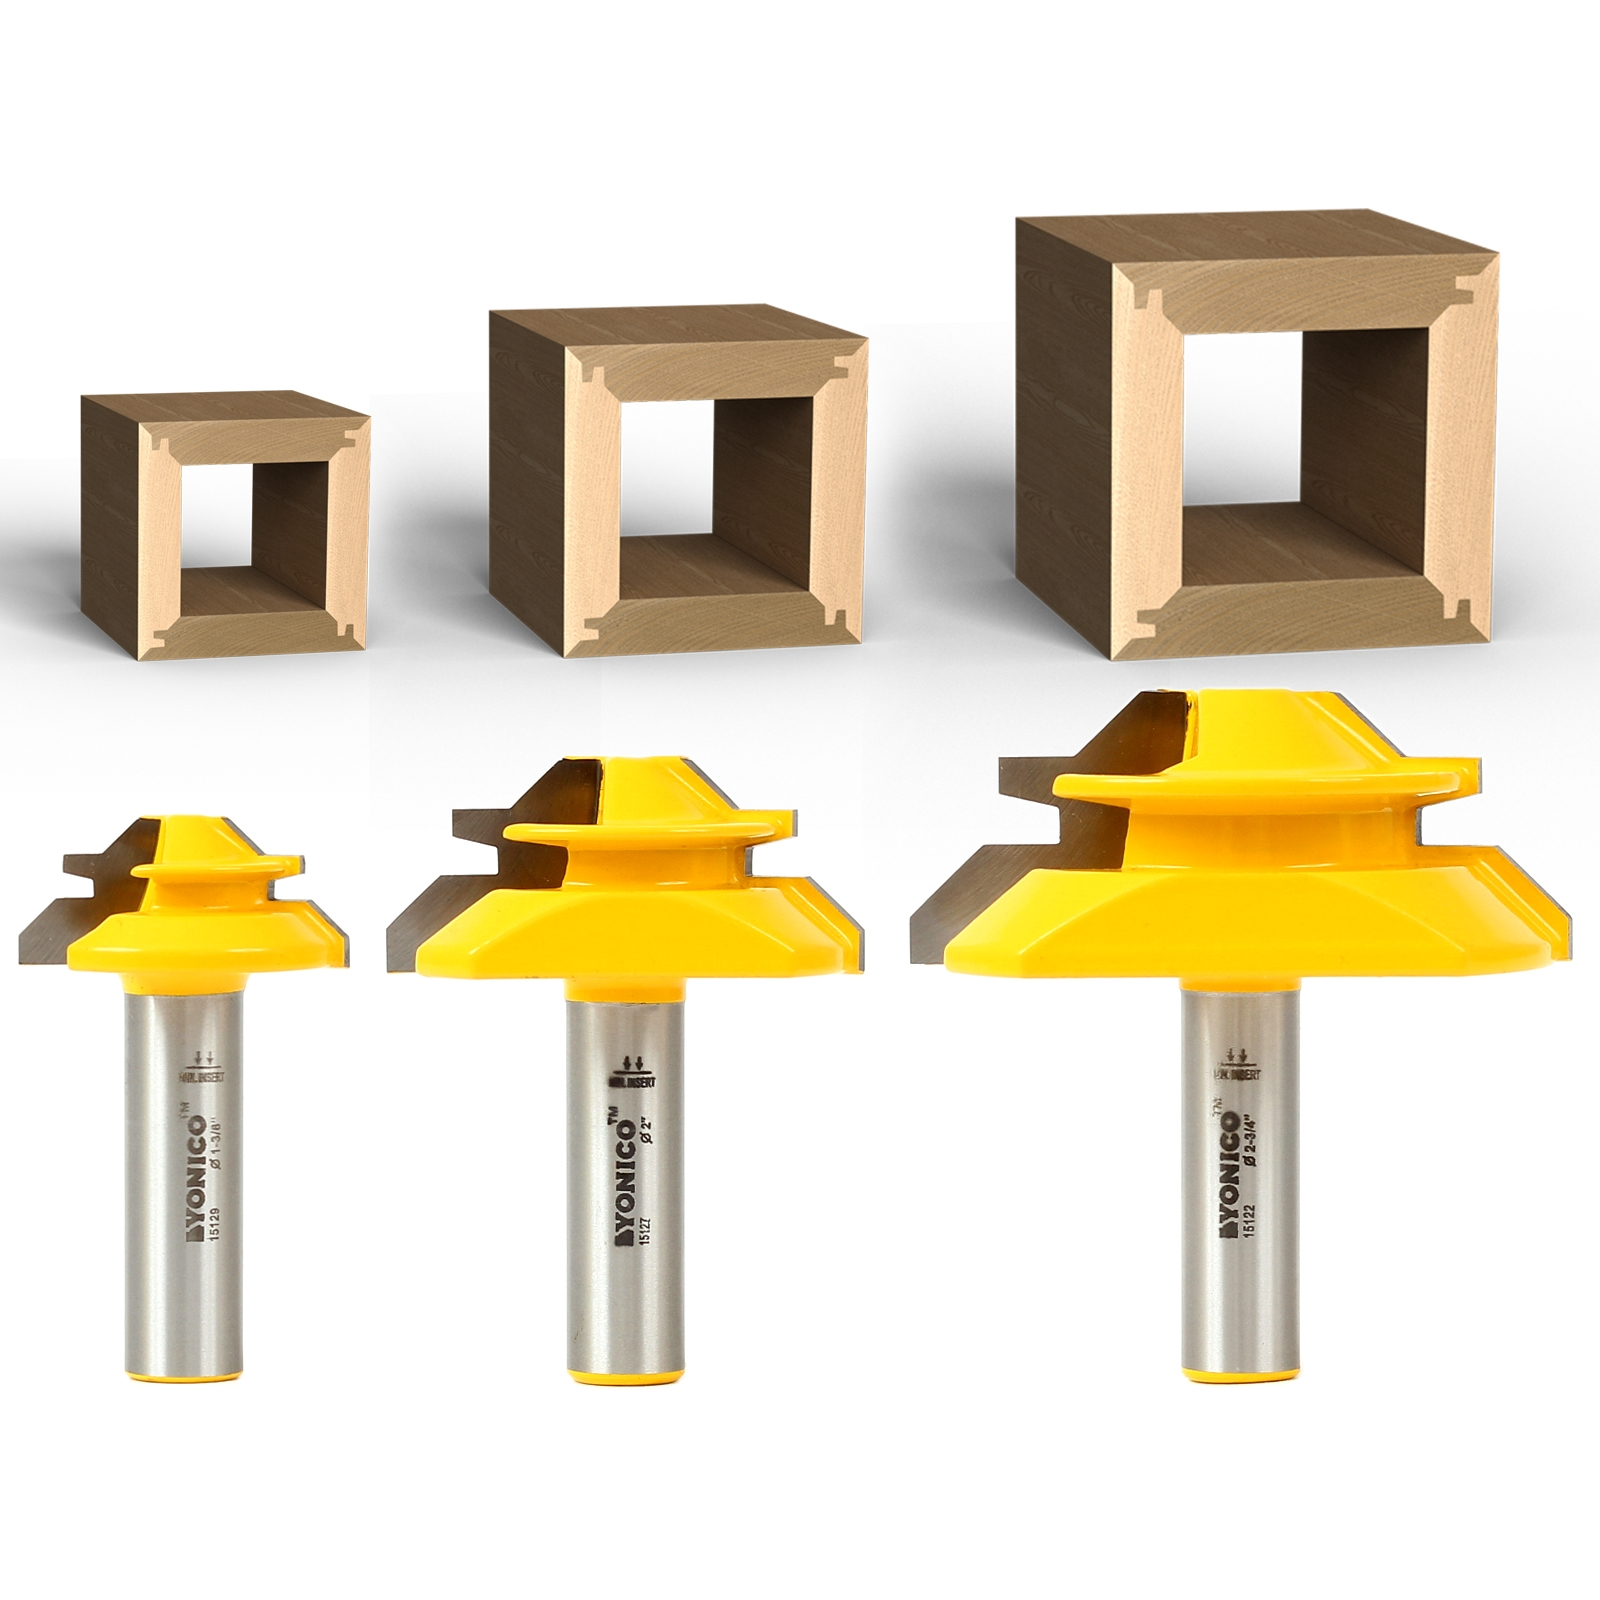 45 Degree Joint 1//2 inch shank router bit set For 1//2, 3//4, 1 board Lock Miter Woodworking Tools Set by Tooldo